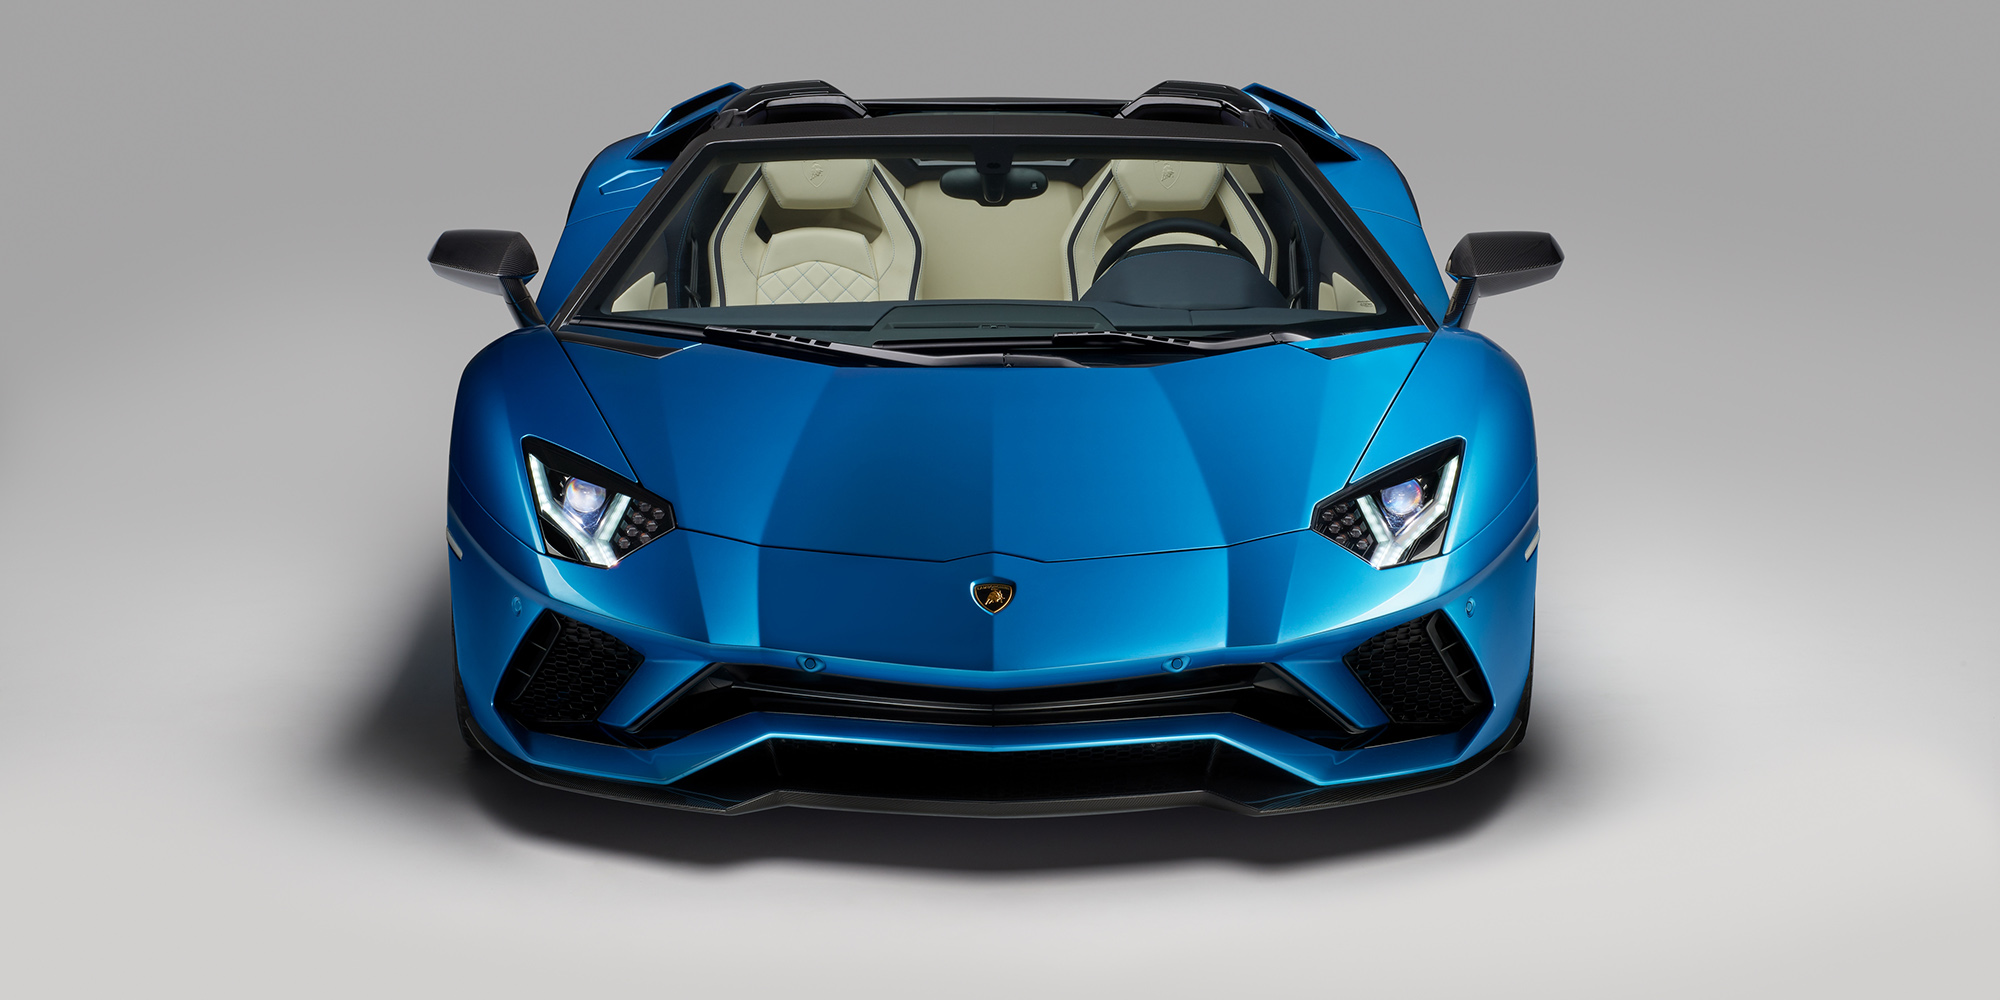 2018 Lamborghini Aventador S Roadster On Sale From 825 530